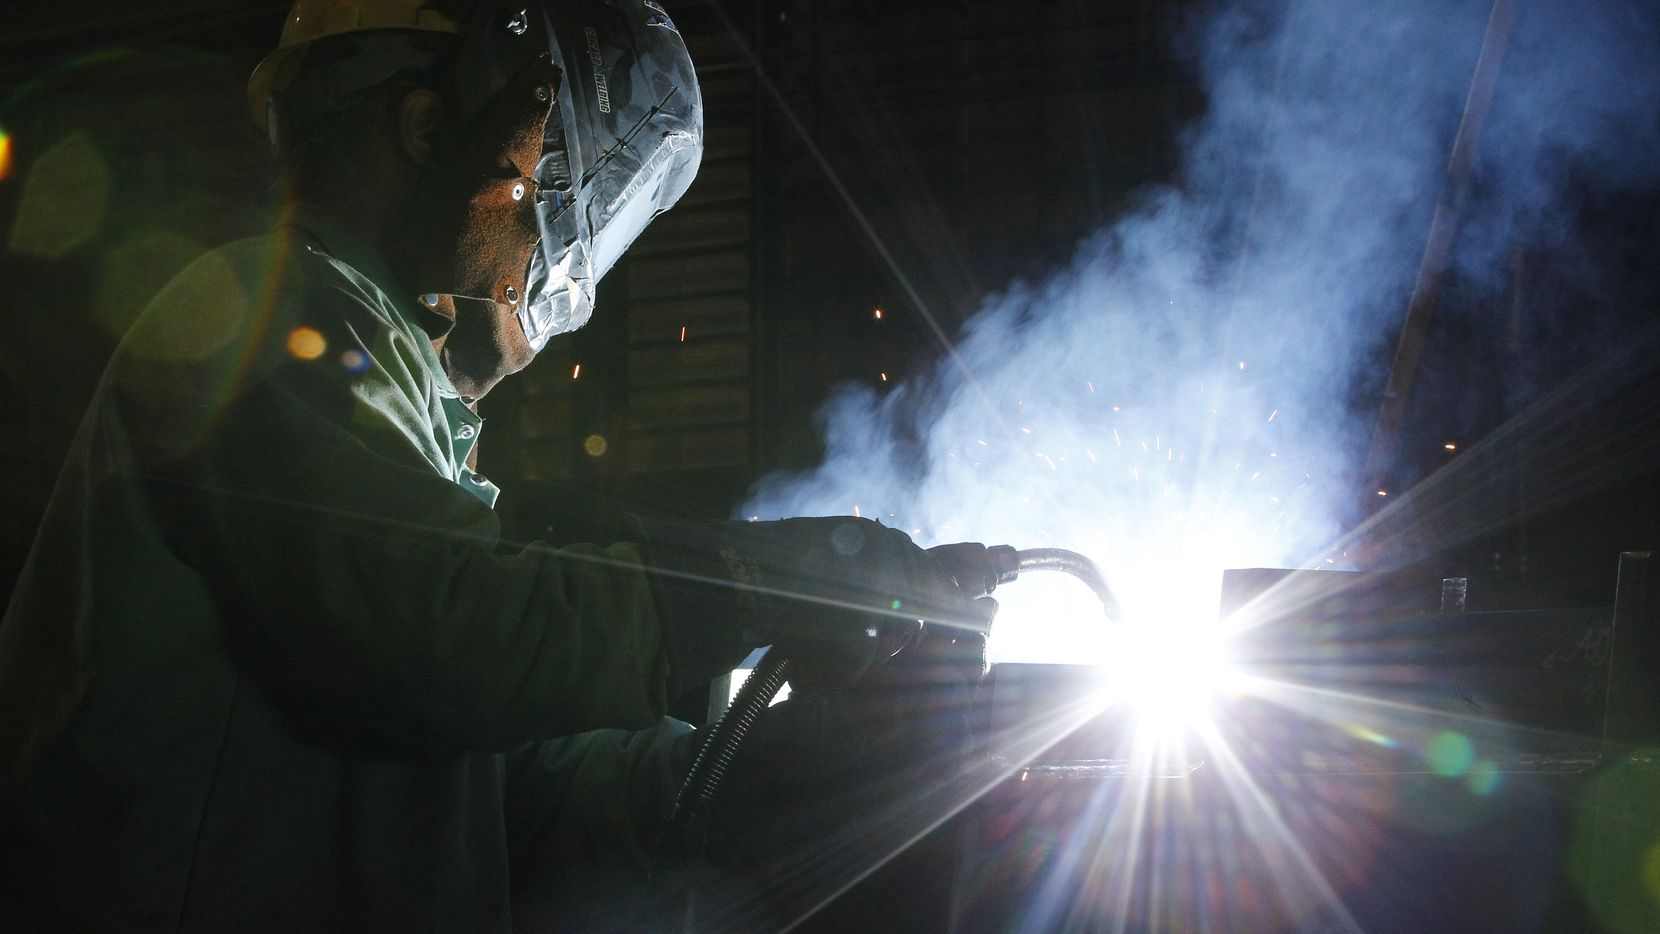 David Allen a welder at Signal Metals Industries welds a tundish on Friday, May 2, 2014 in Irving, Texas. A tundish is a reservoir into which molten steel is poured from the steelmaking ladle in a continuous casting process. (David Woo/The Dallas Morning News)